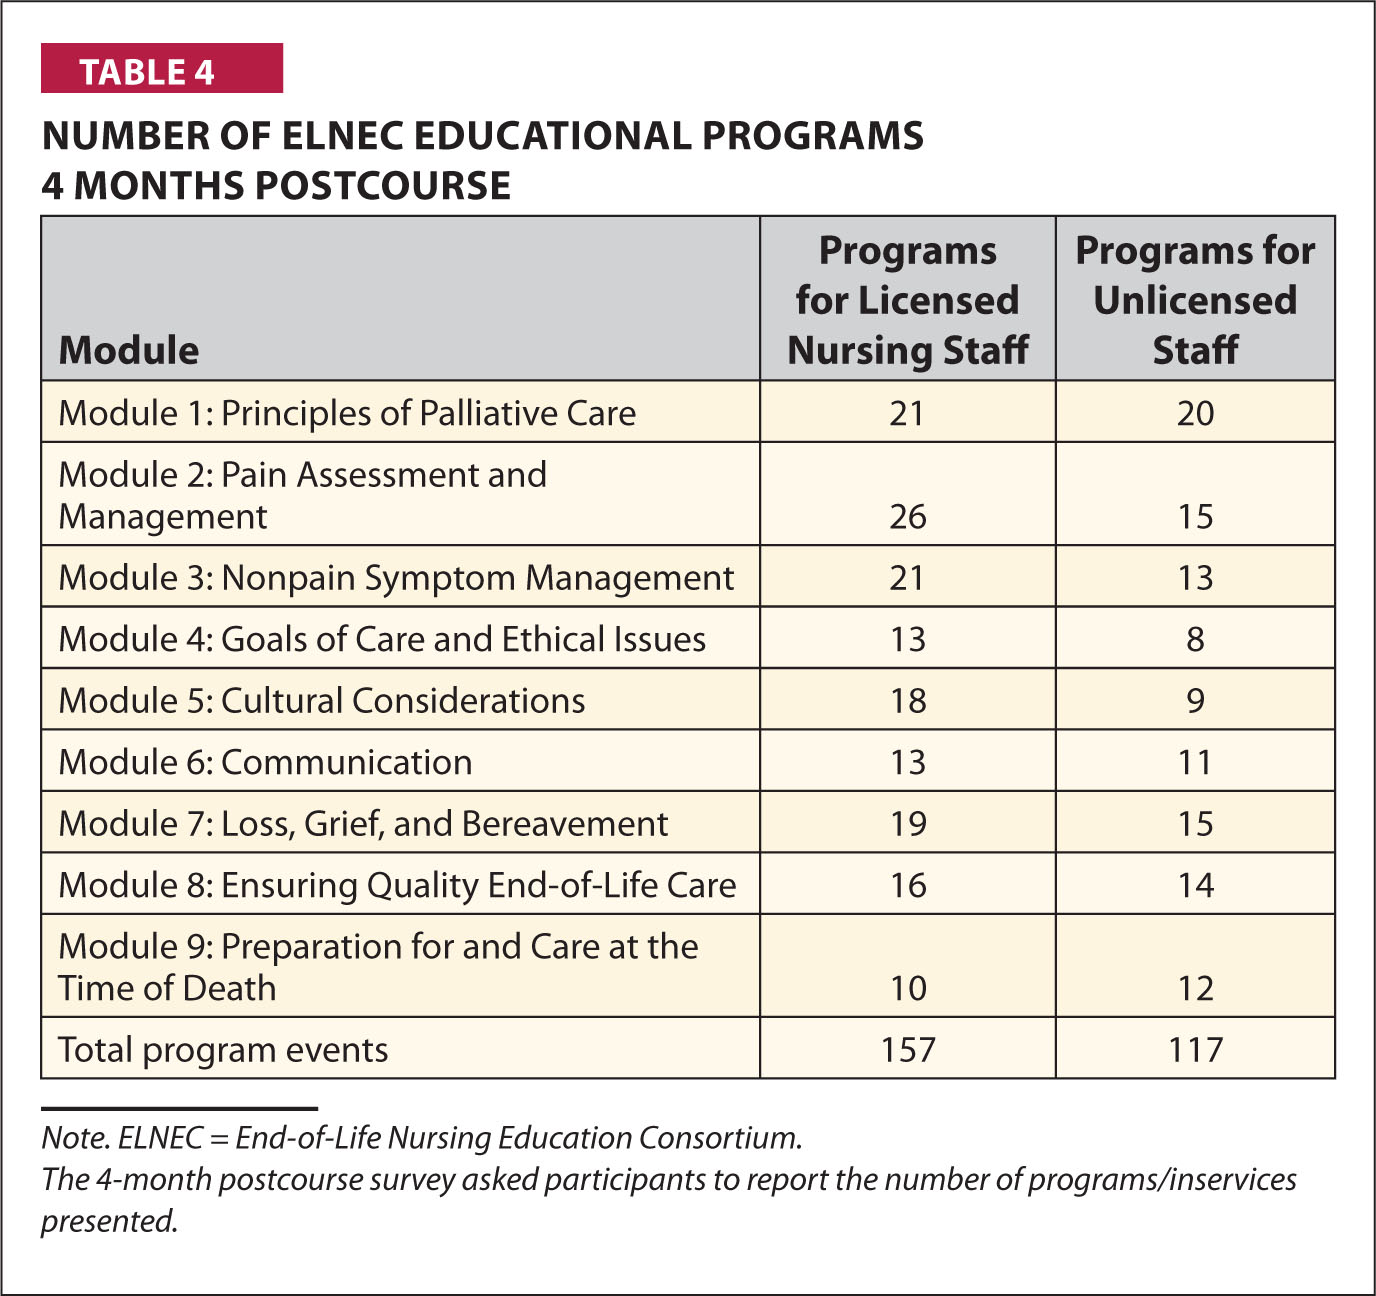 Number of Elnec Educational Programs 4 Months Postcourse